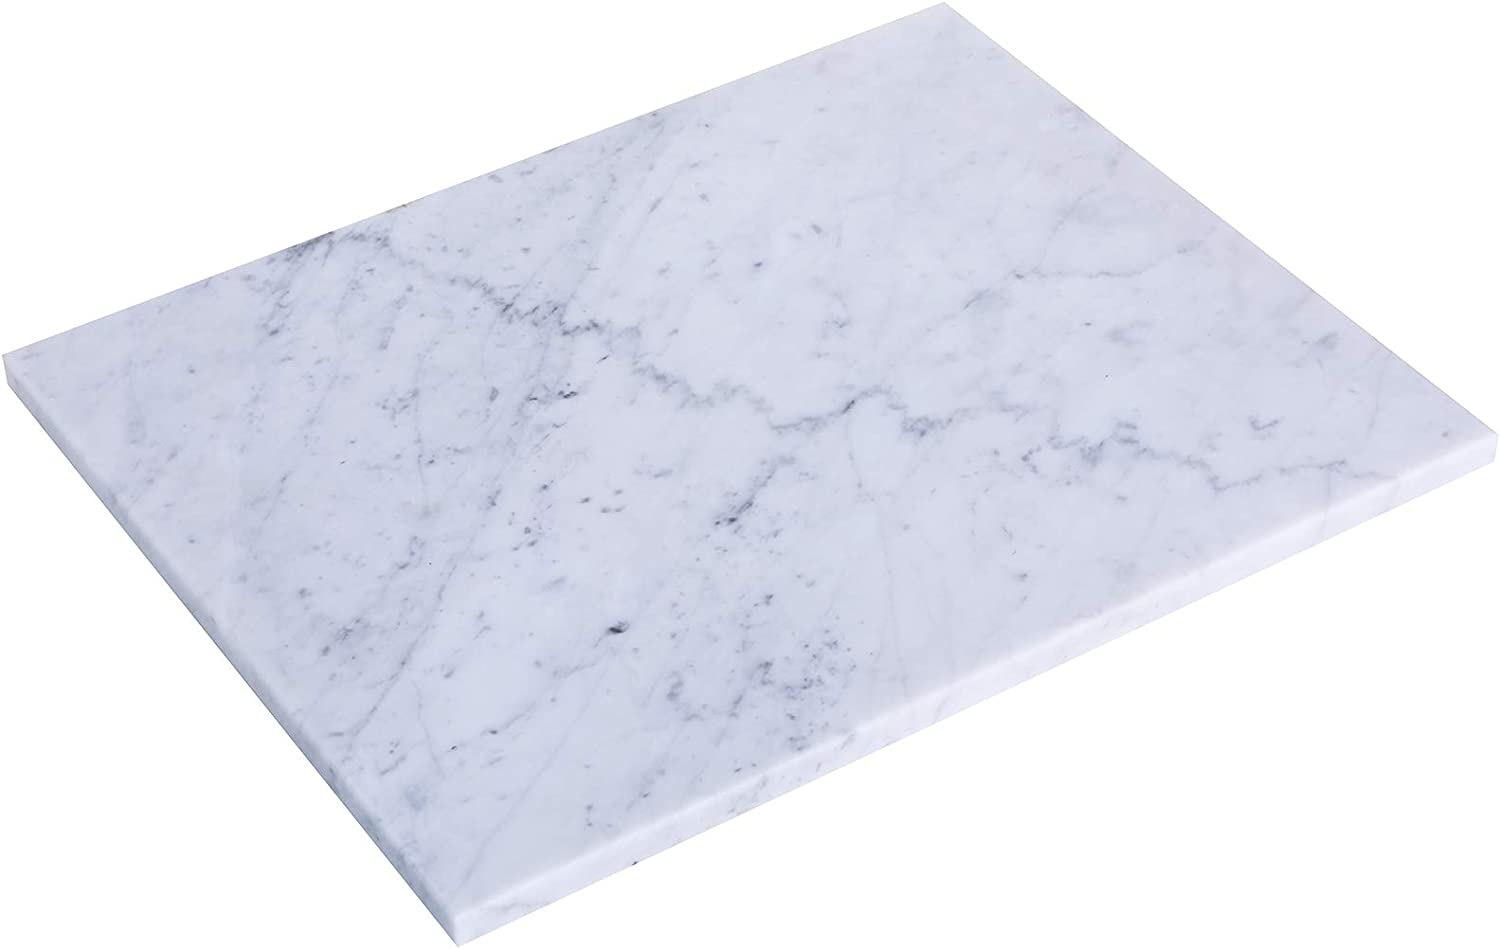 Cheap mail order shopping Department store JESSILIN HOME Marble Cutting Board Boa 16x20 Pastry inch